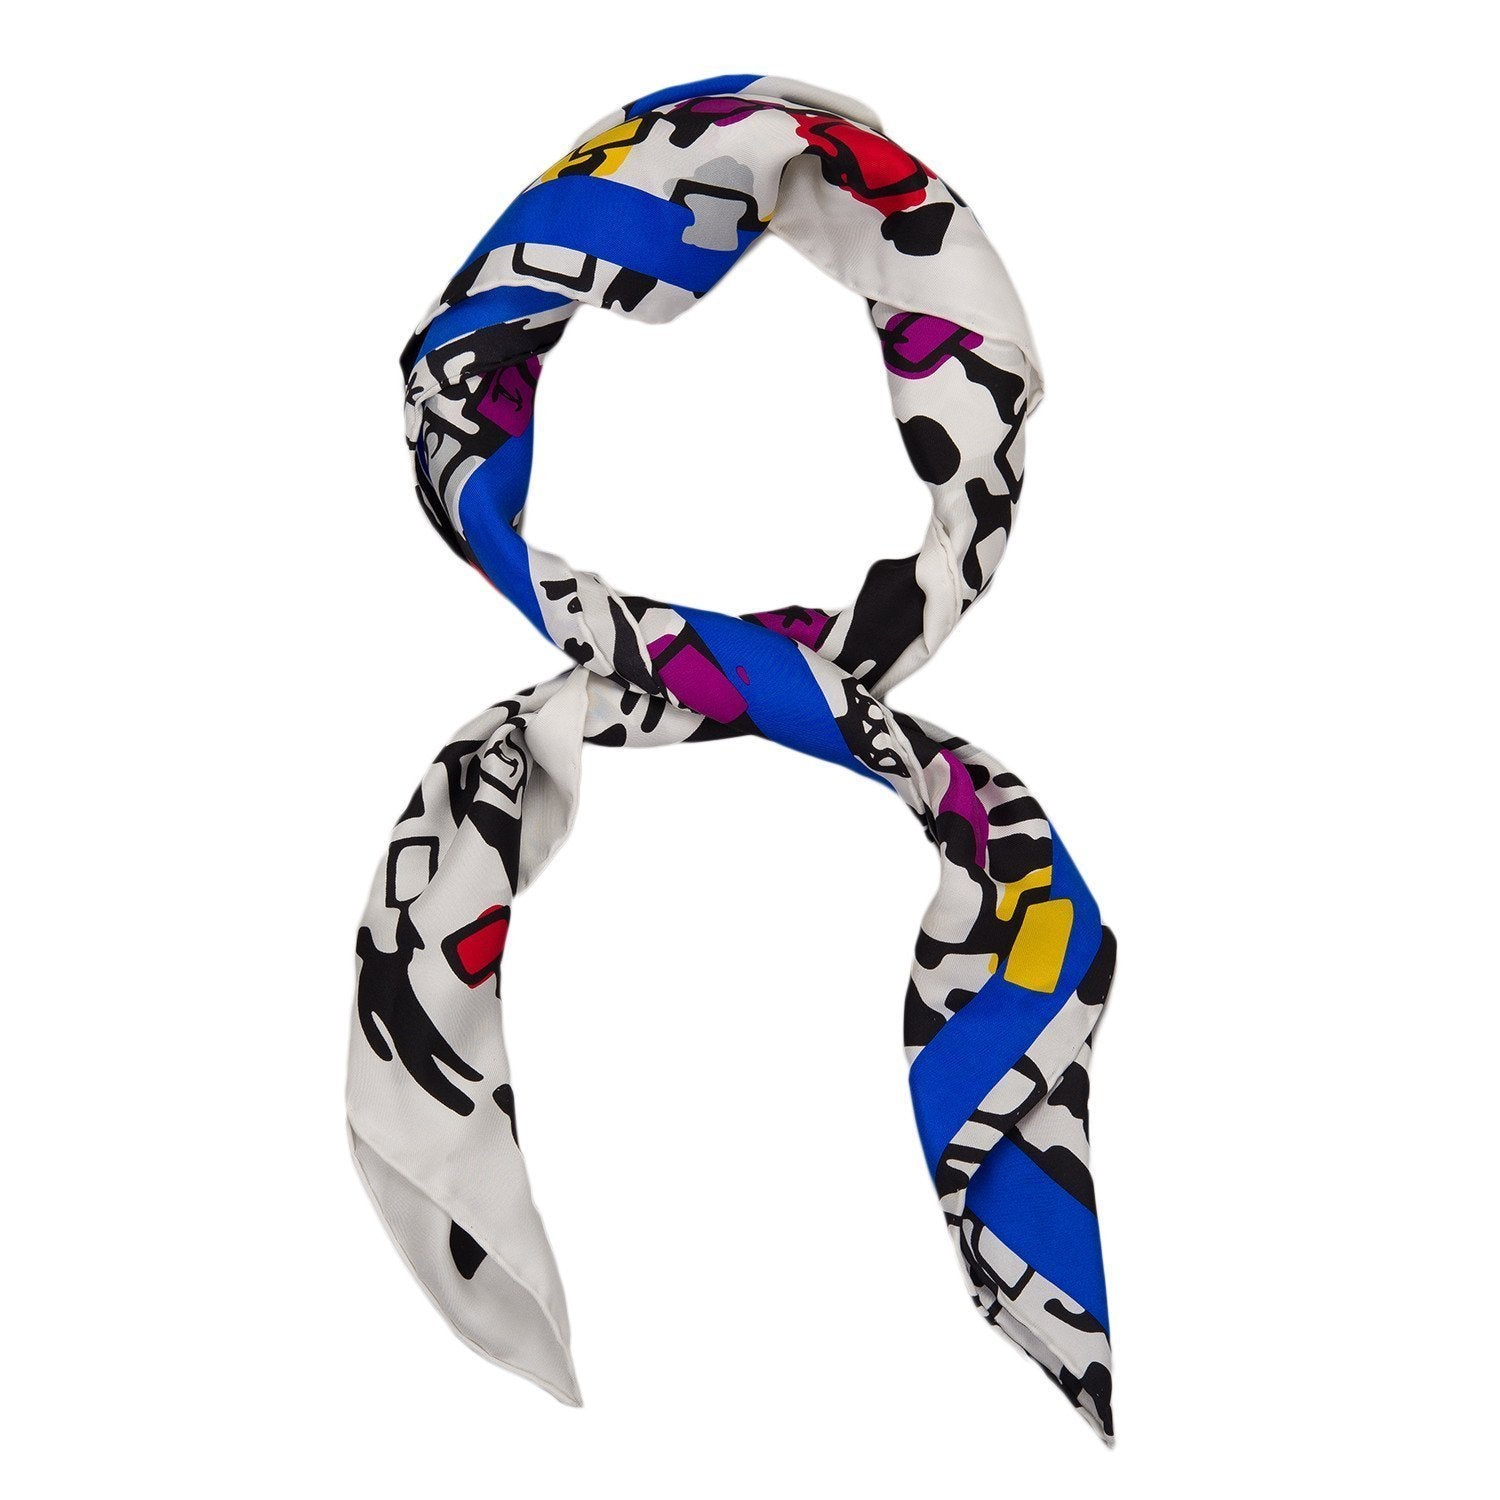 Chanel Demonstrate Logo Silhouette Silk Scarf Scarves